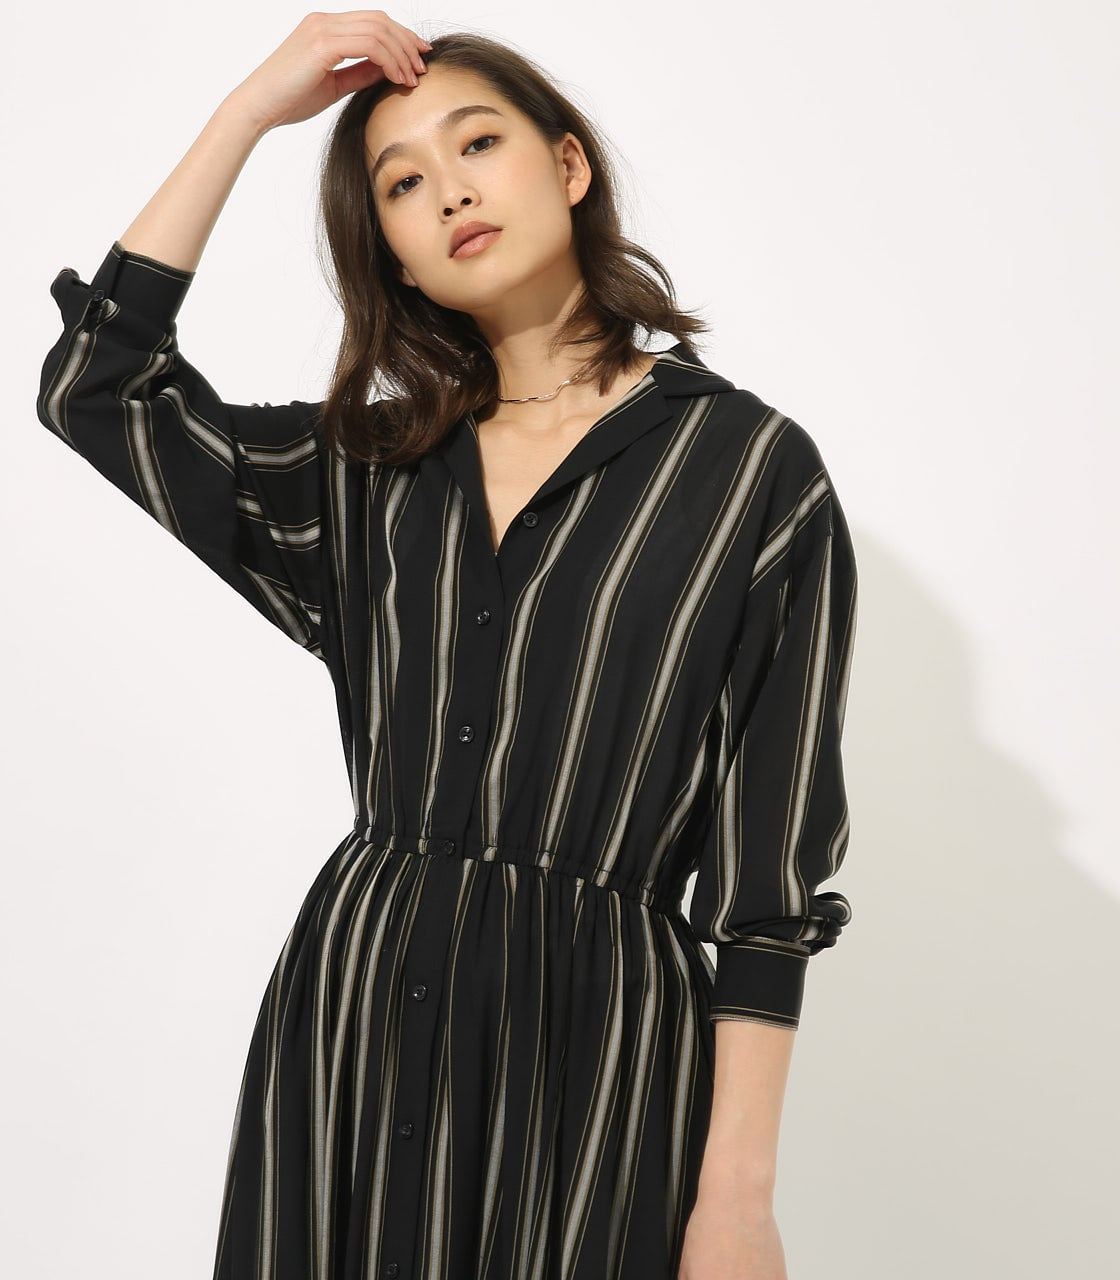 【AZUL BY MOUSSY】BROWSING MAXI ONEPIECE 【MOOK49掲載 90037】 詳細画像 柄BLK 2